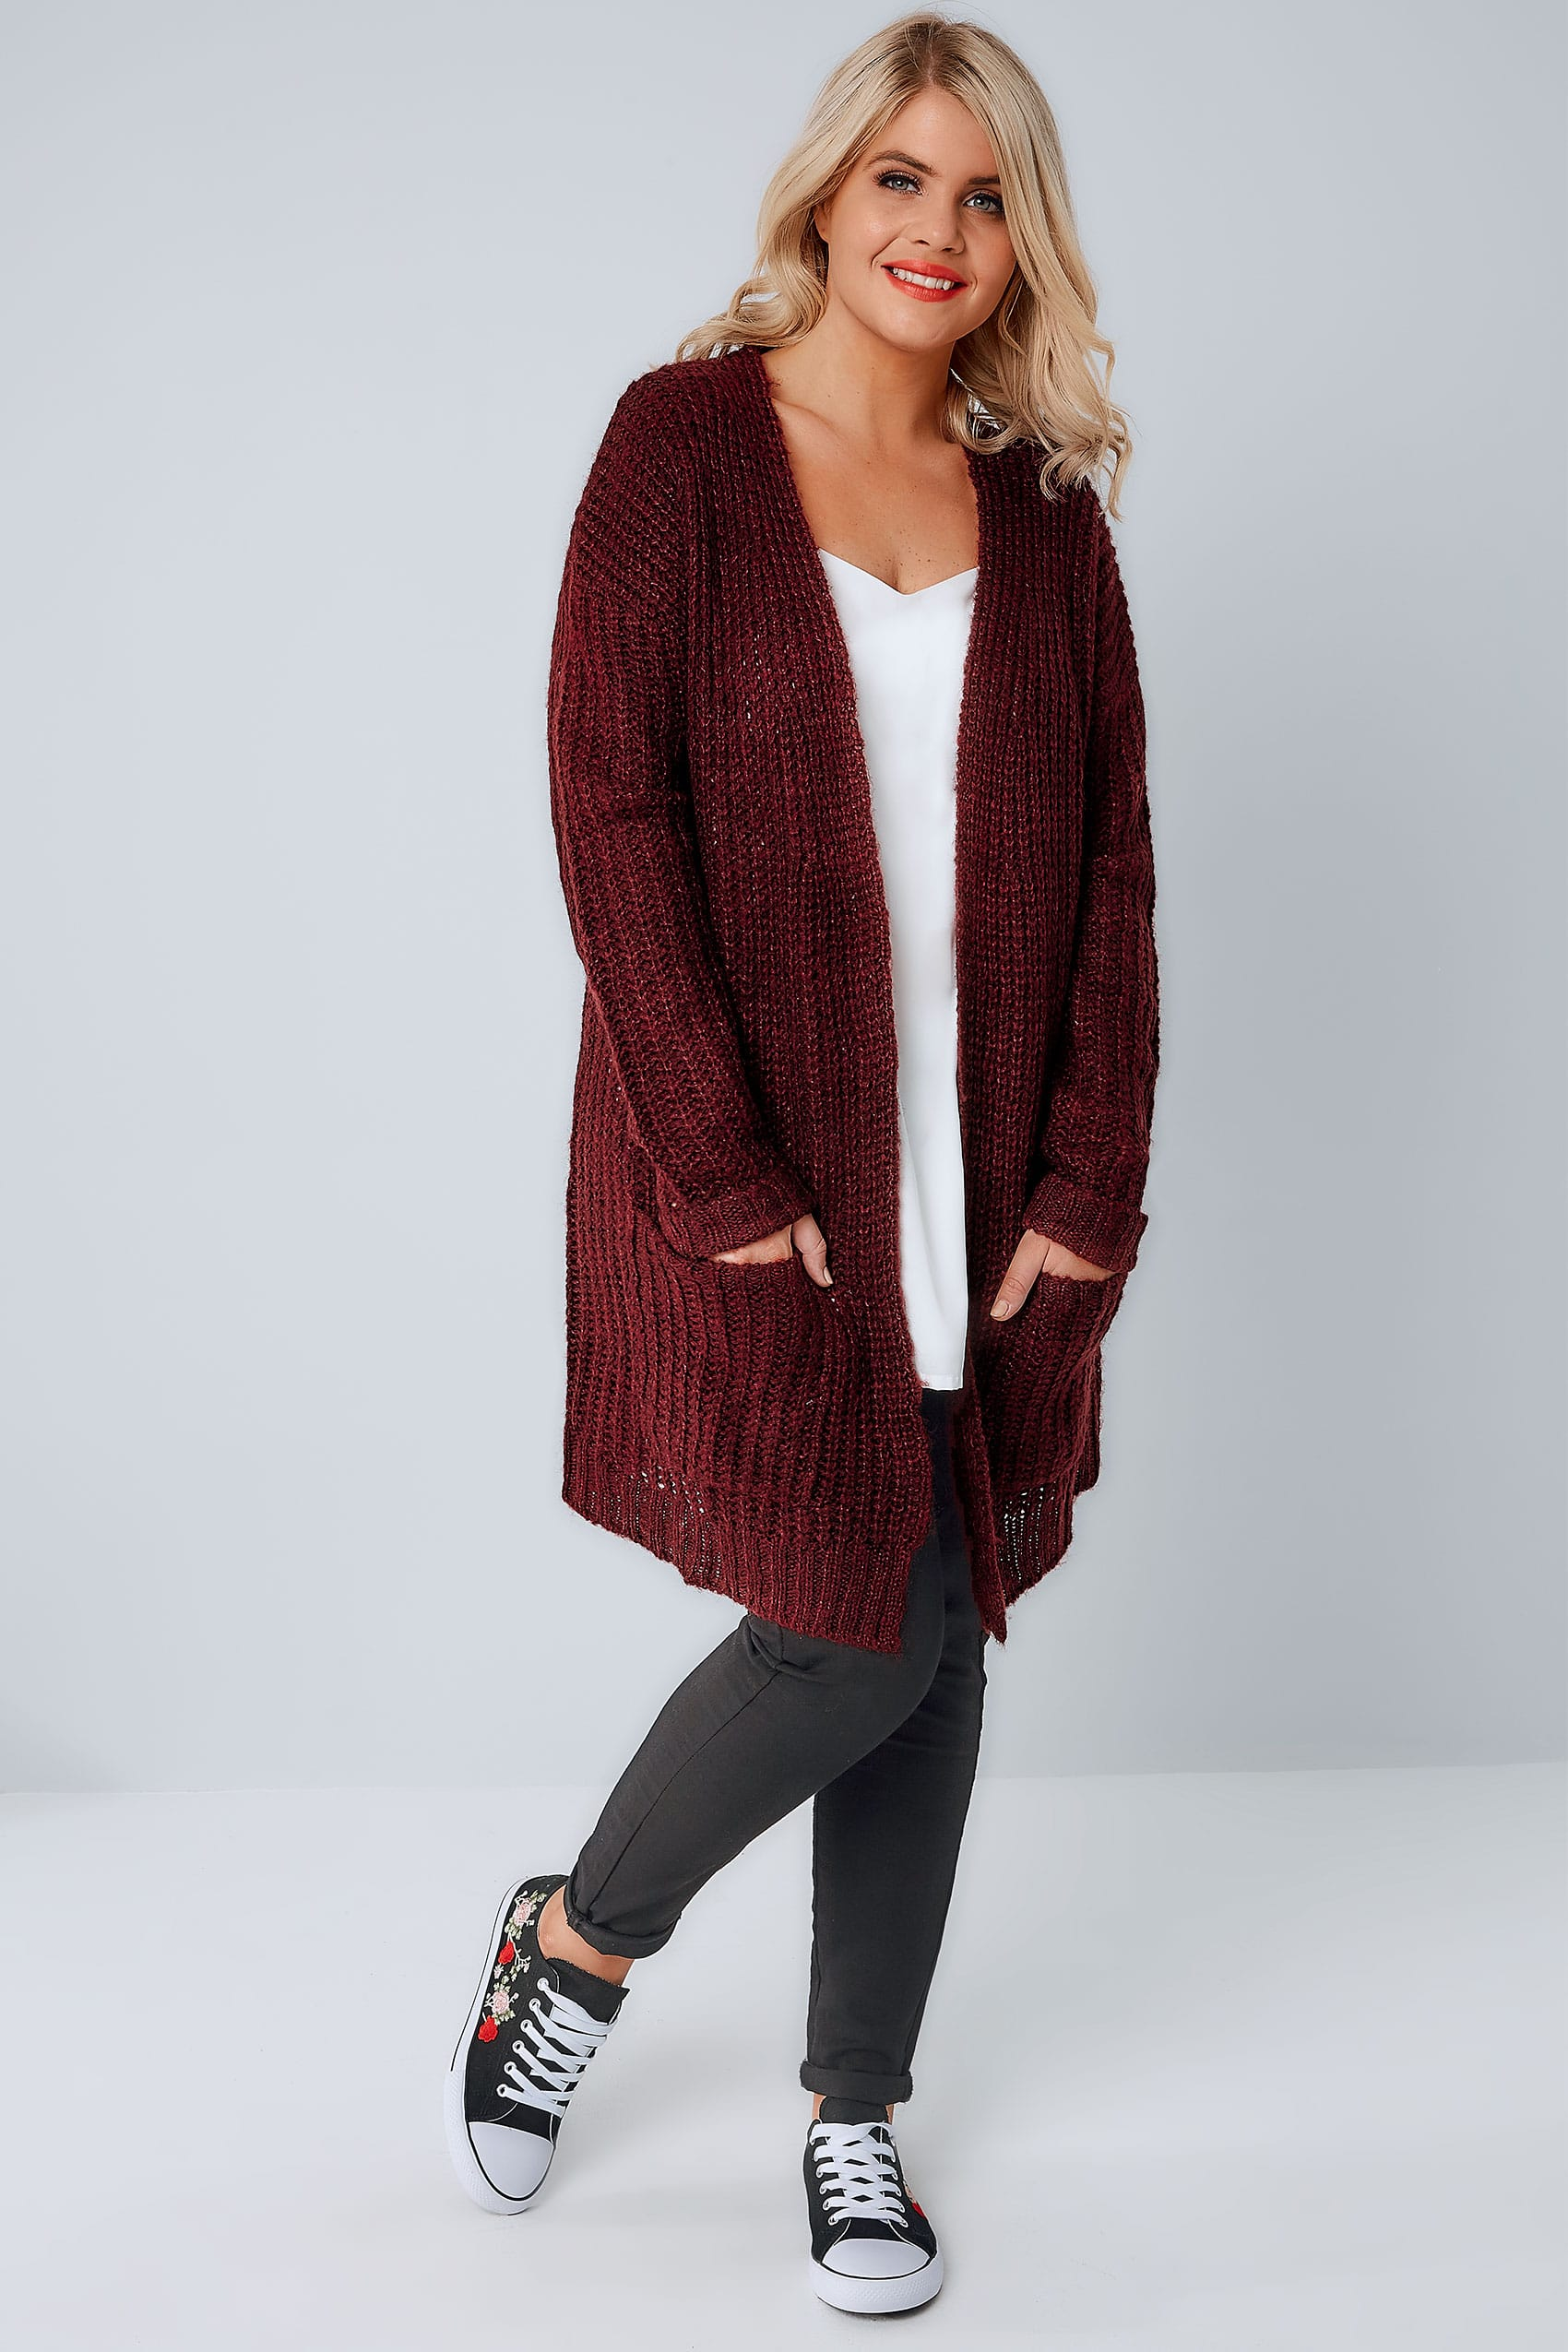 Berry Longline Chunky Knit Cardigan With Pockets, Plus size 16 to 36